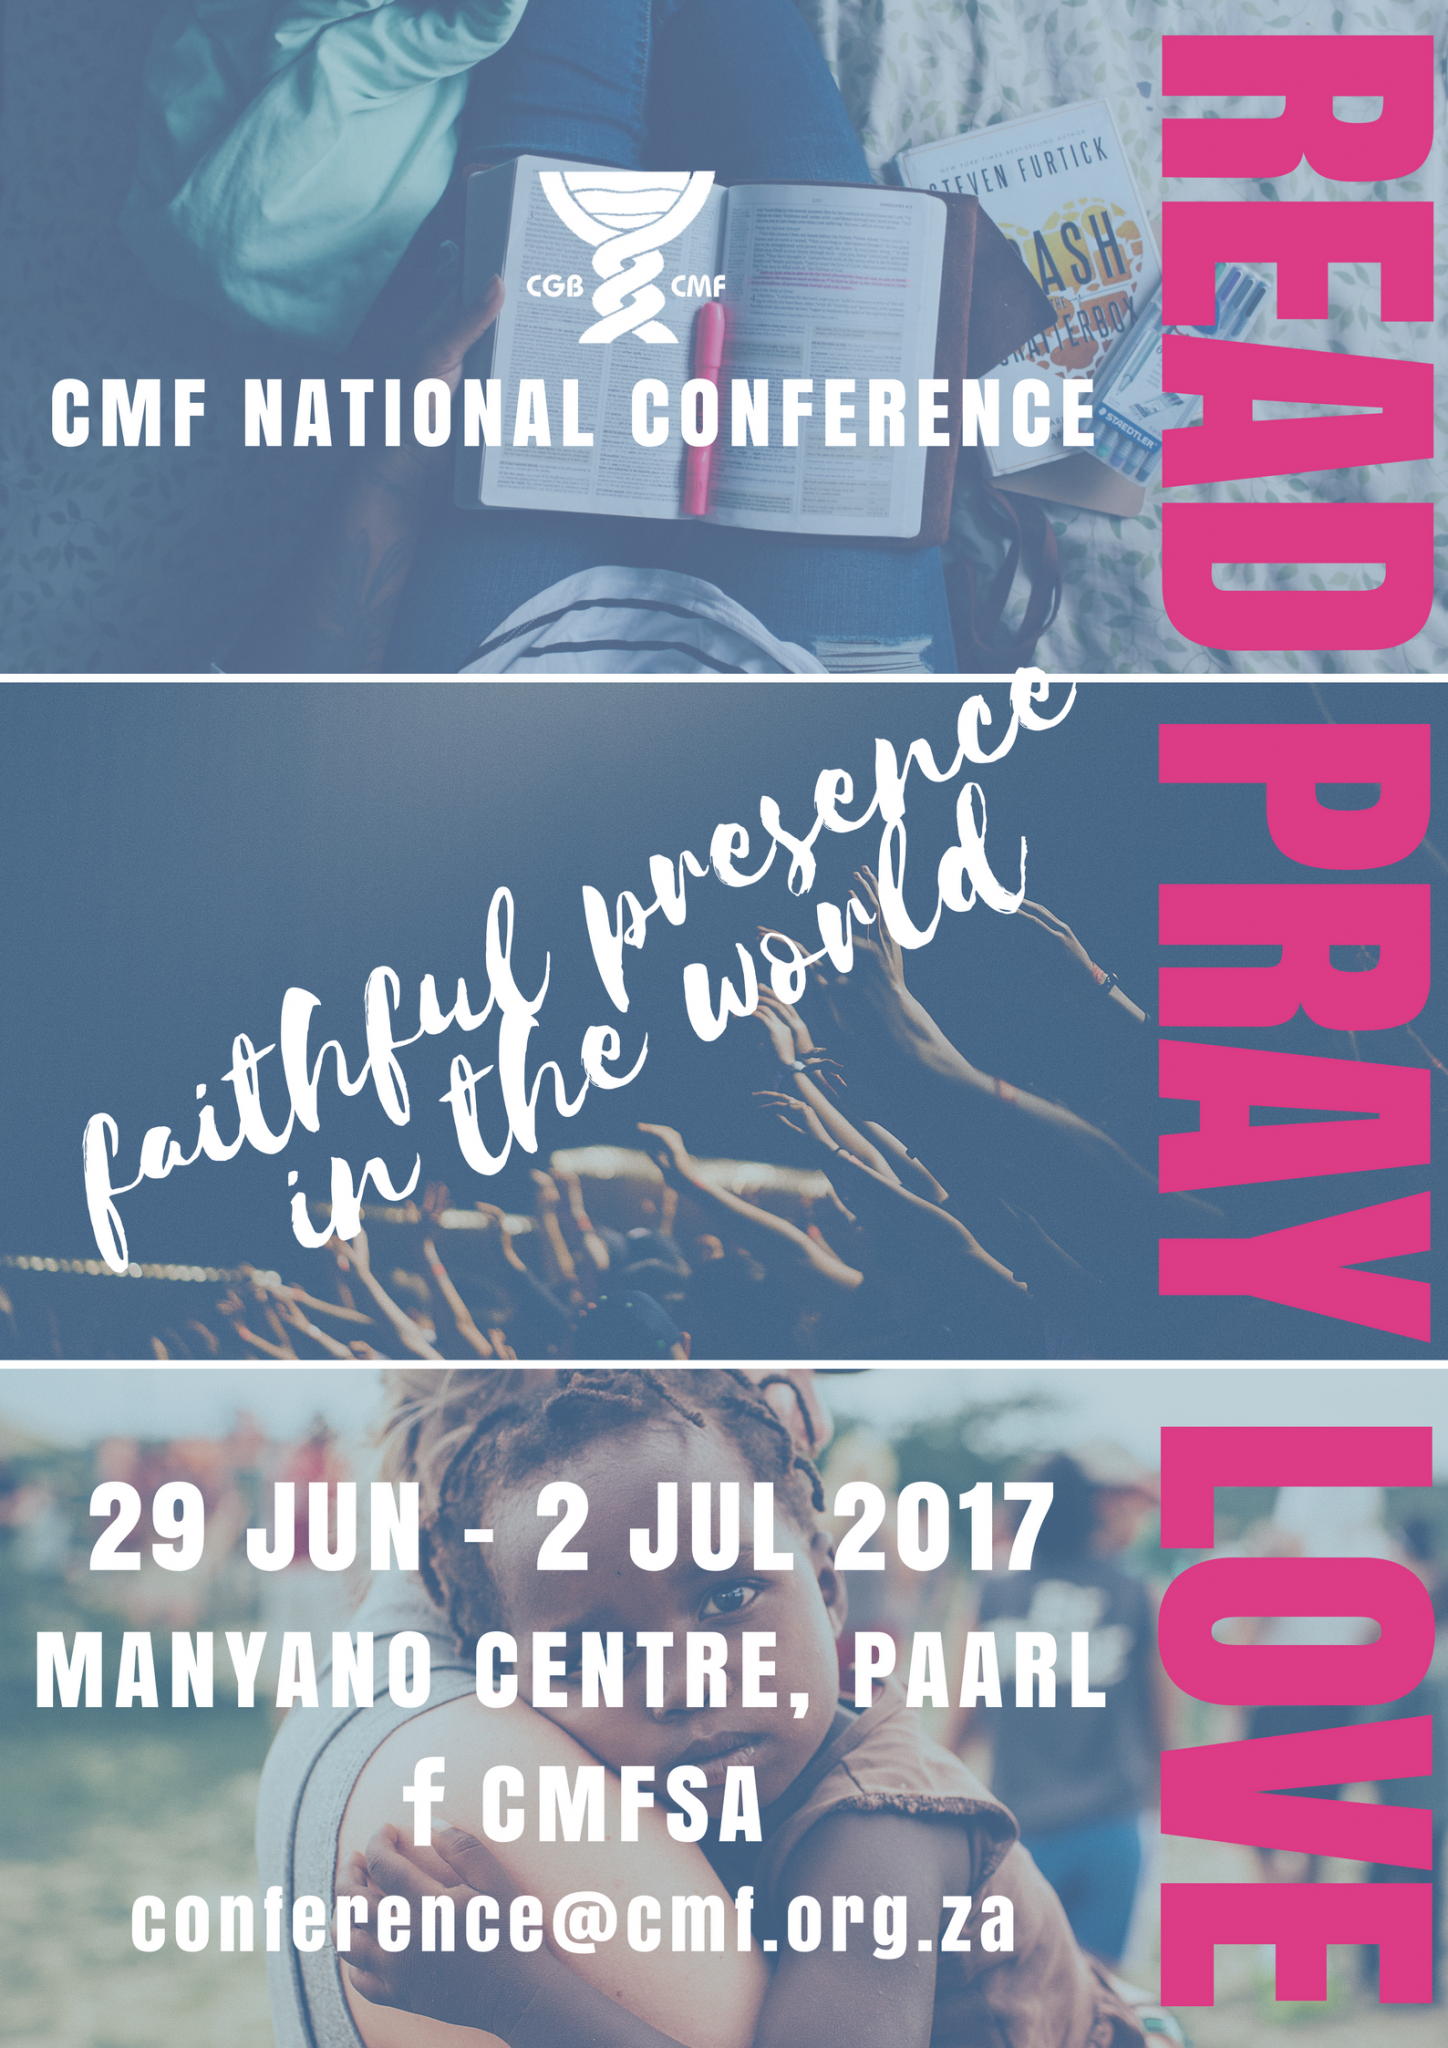 CMF National Conference